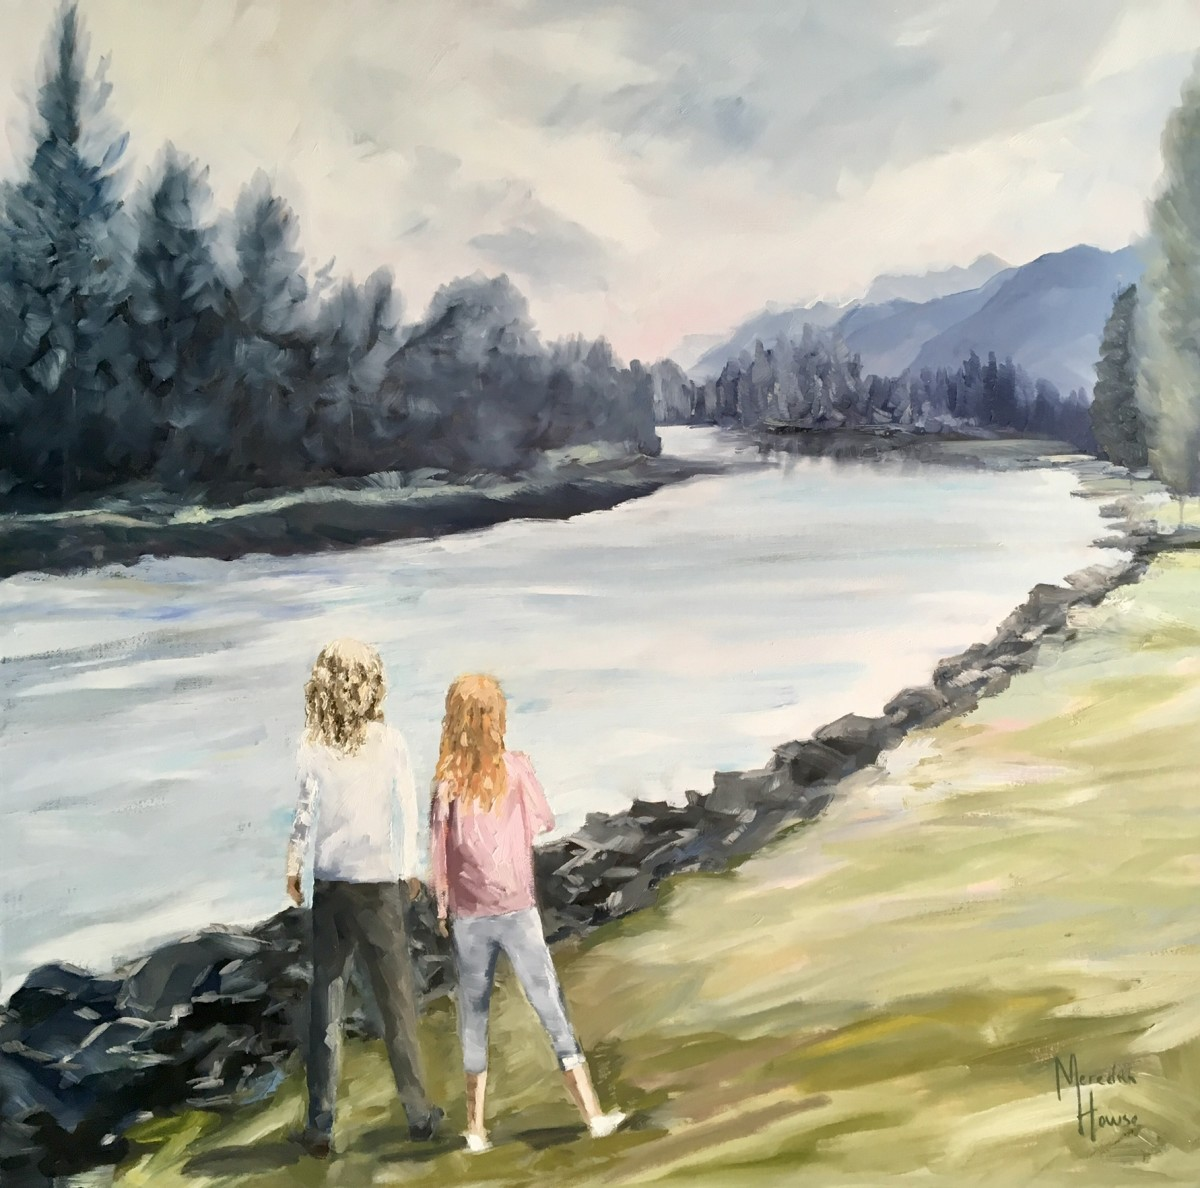 Home on the Elk River by Meredith Howse